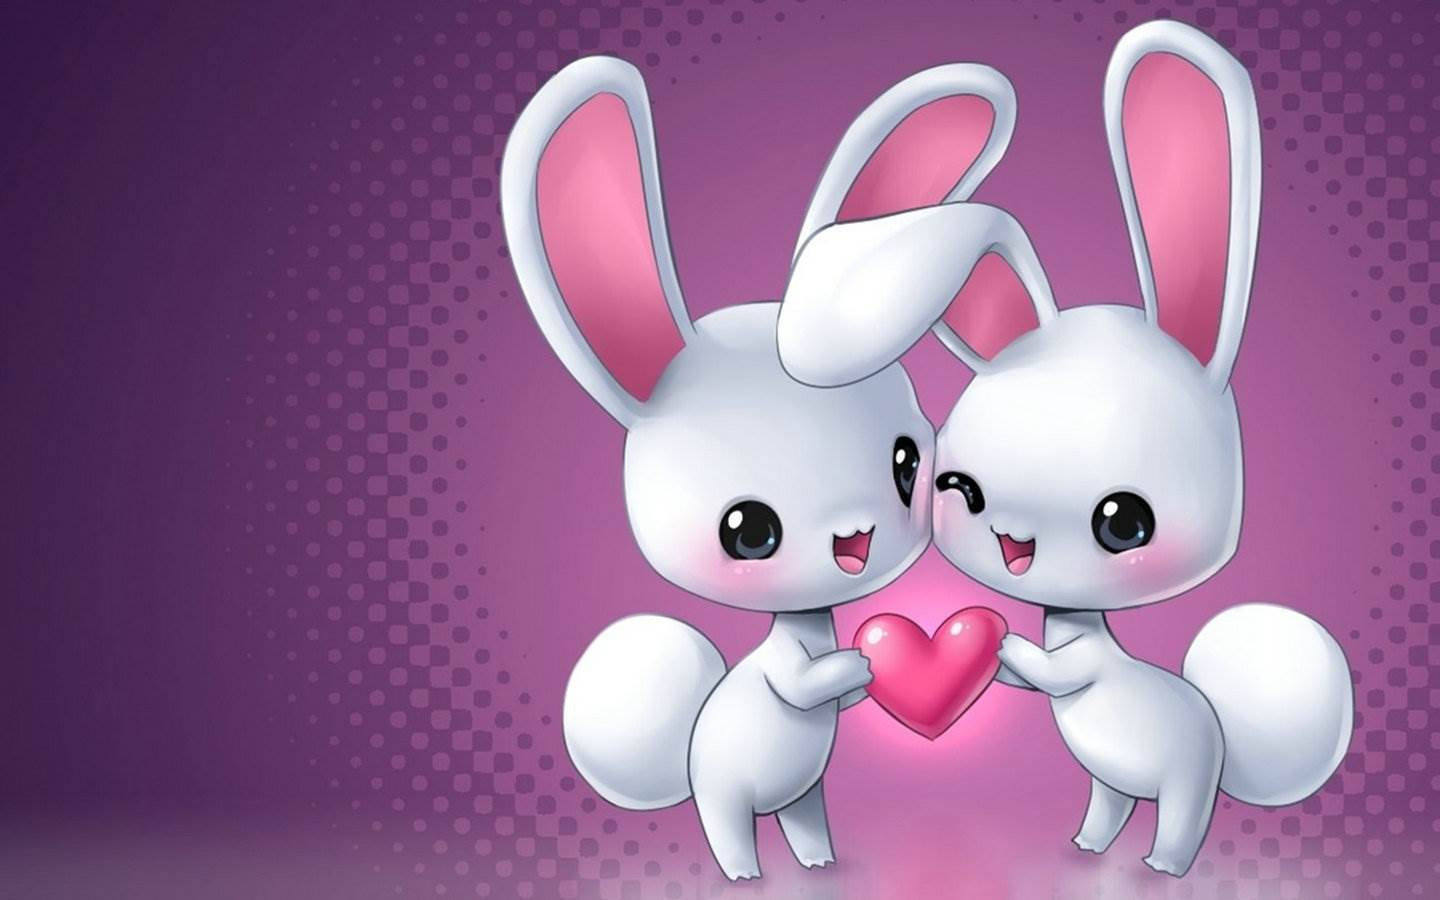 Romantic Love Wallpapers for you 1440x900